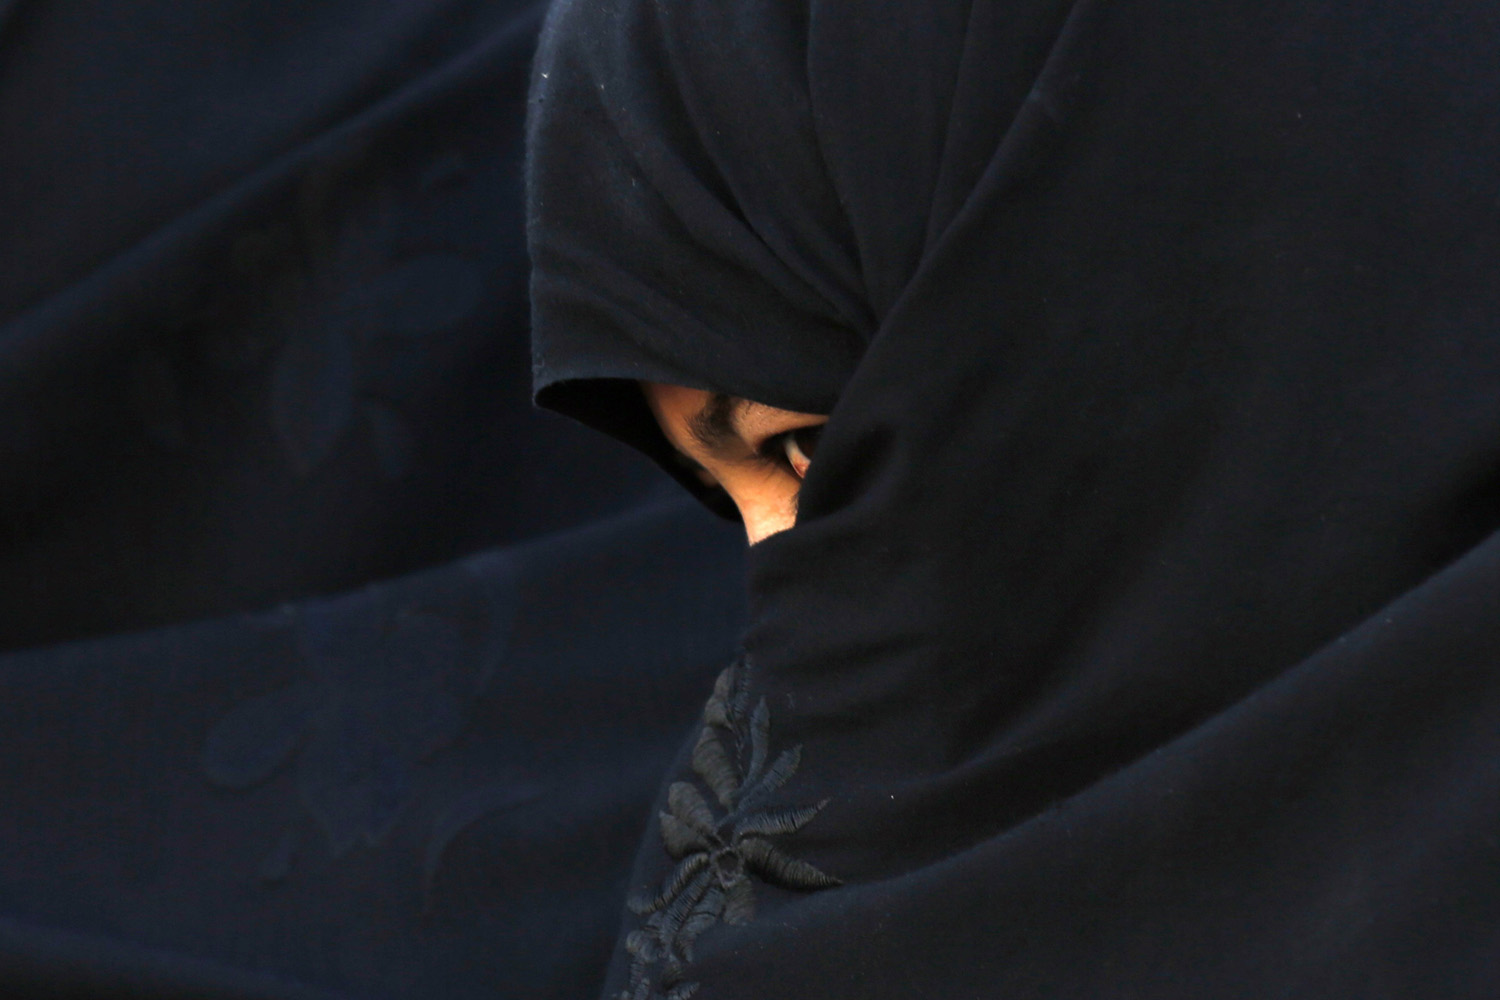 June 2, 2014. An Afghan woman attends an election campaign of Afghan presidential candidate Abdullah Abdullah in Chaghchran capital of Ghor province The second round presidential election will be held on June 14.